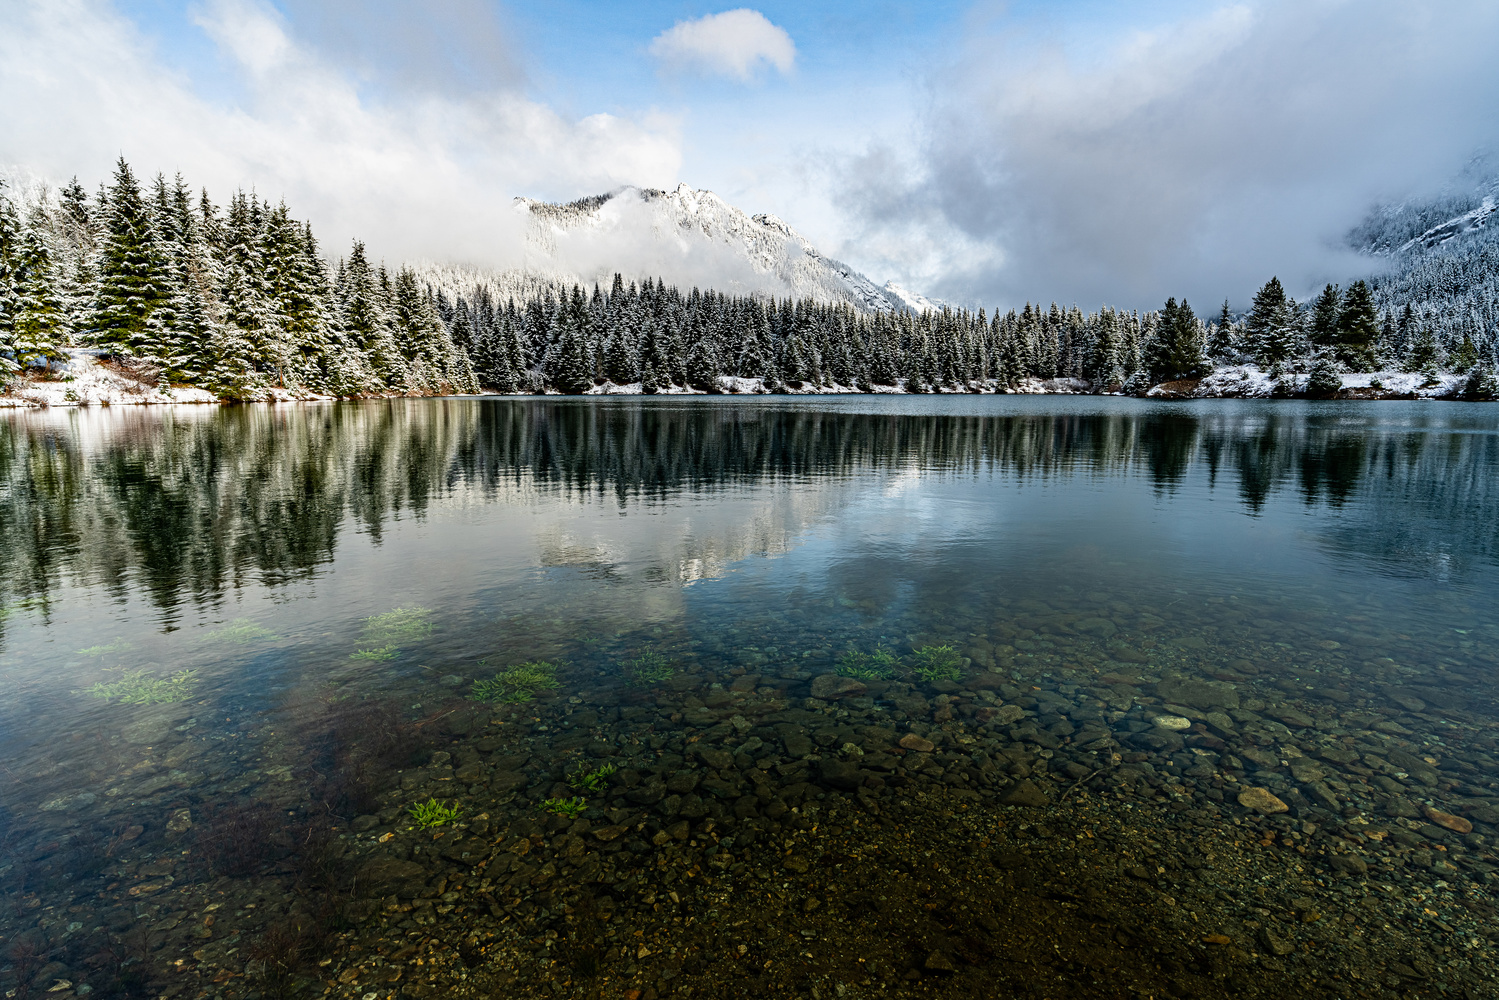 Snoqualmie Pass, Washington State by Ryan Fulkerson